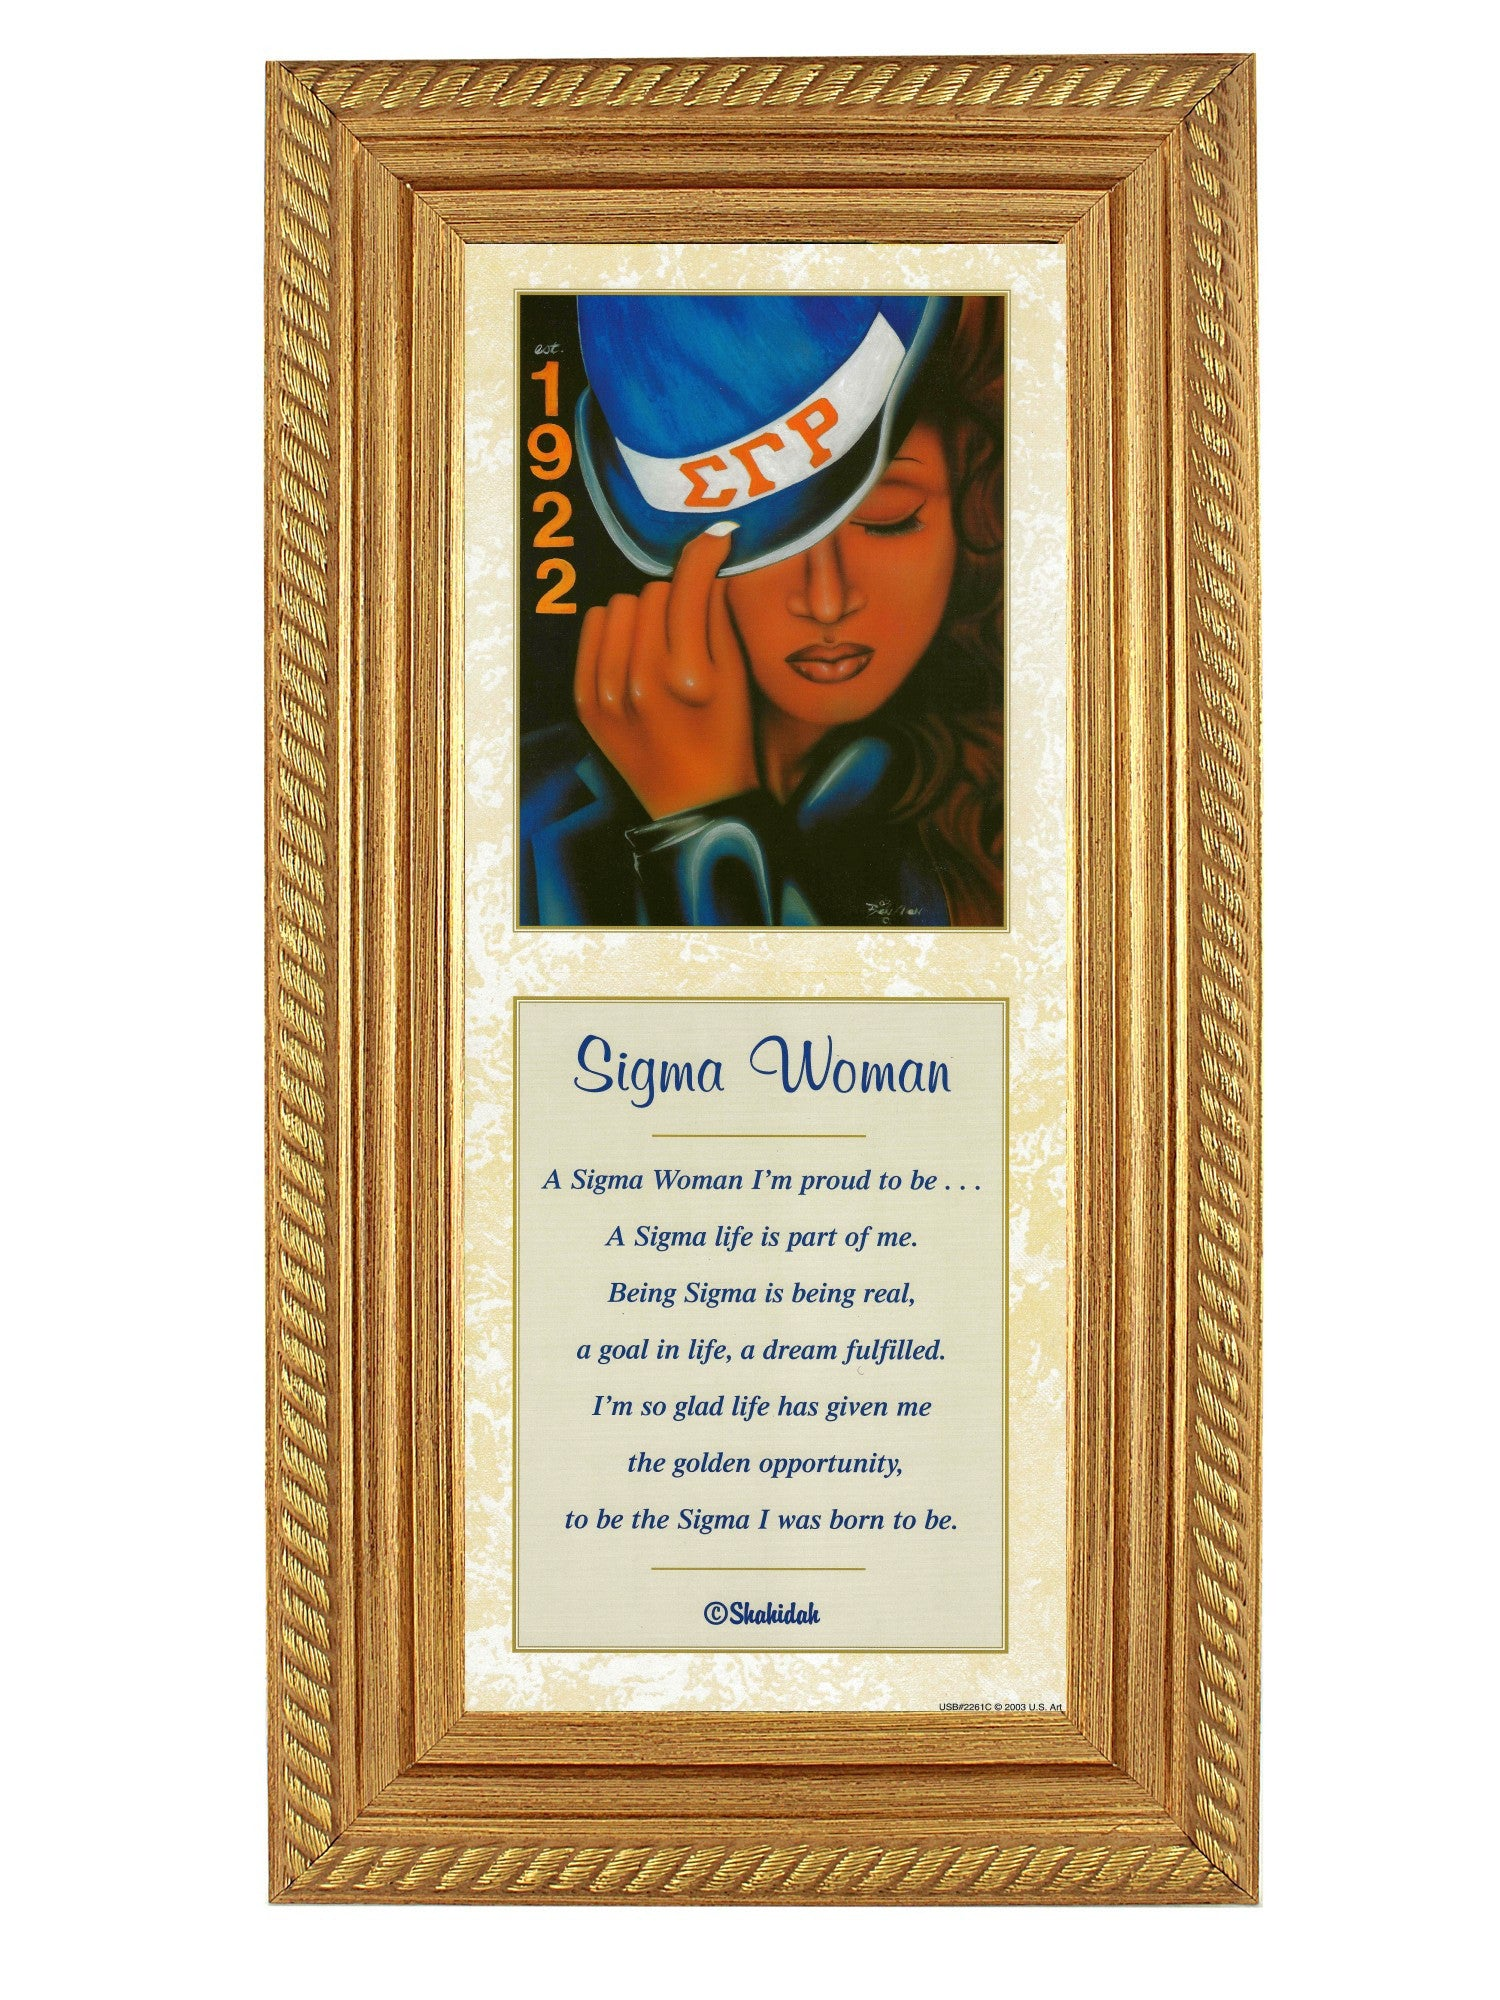 Sigma Woman by Fred Mathews and Shahidah (Gold Rope Frame)